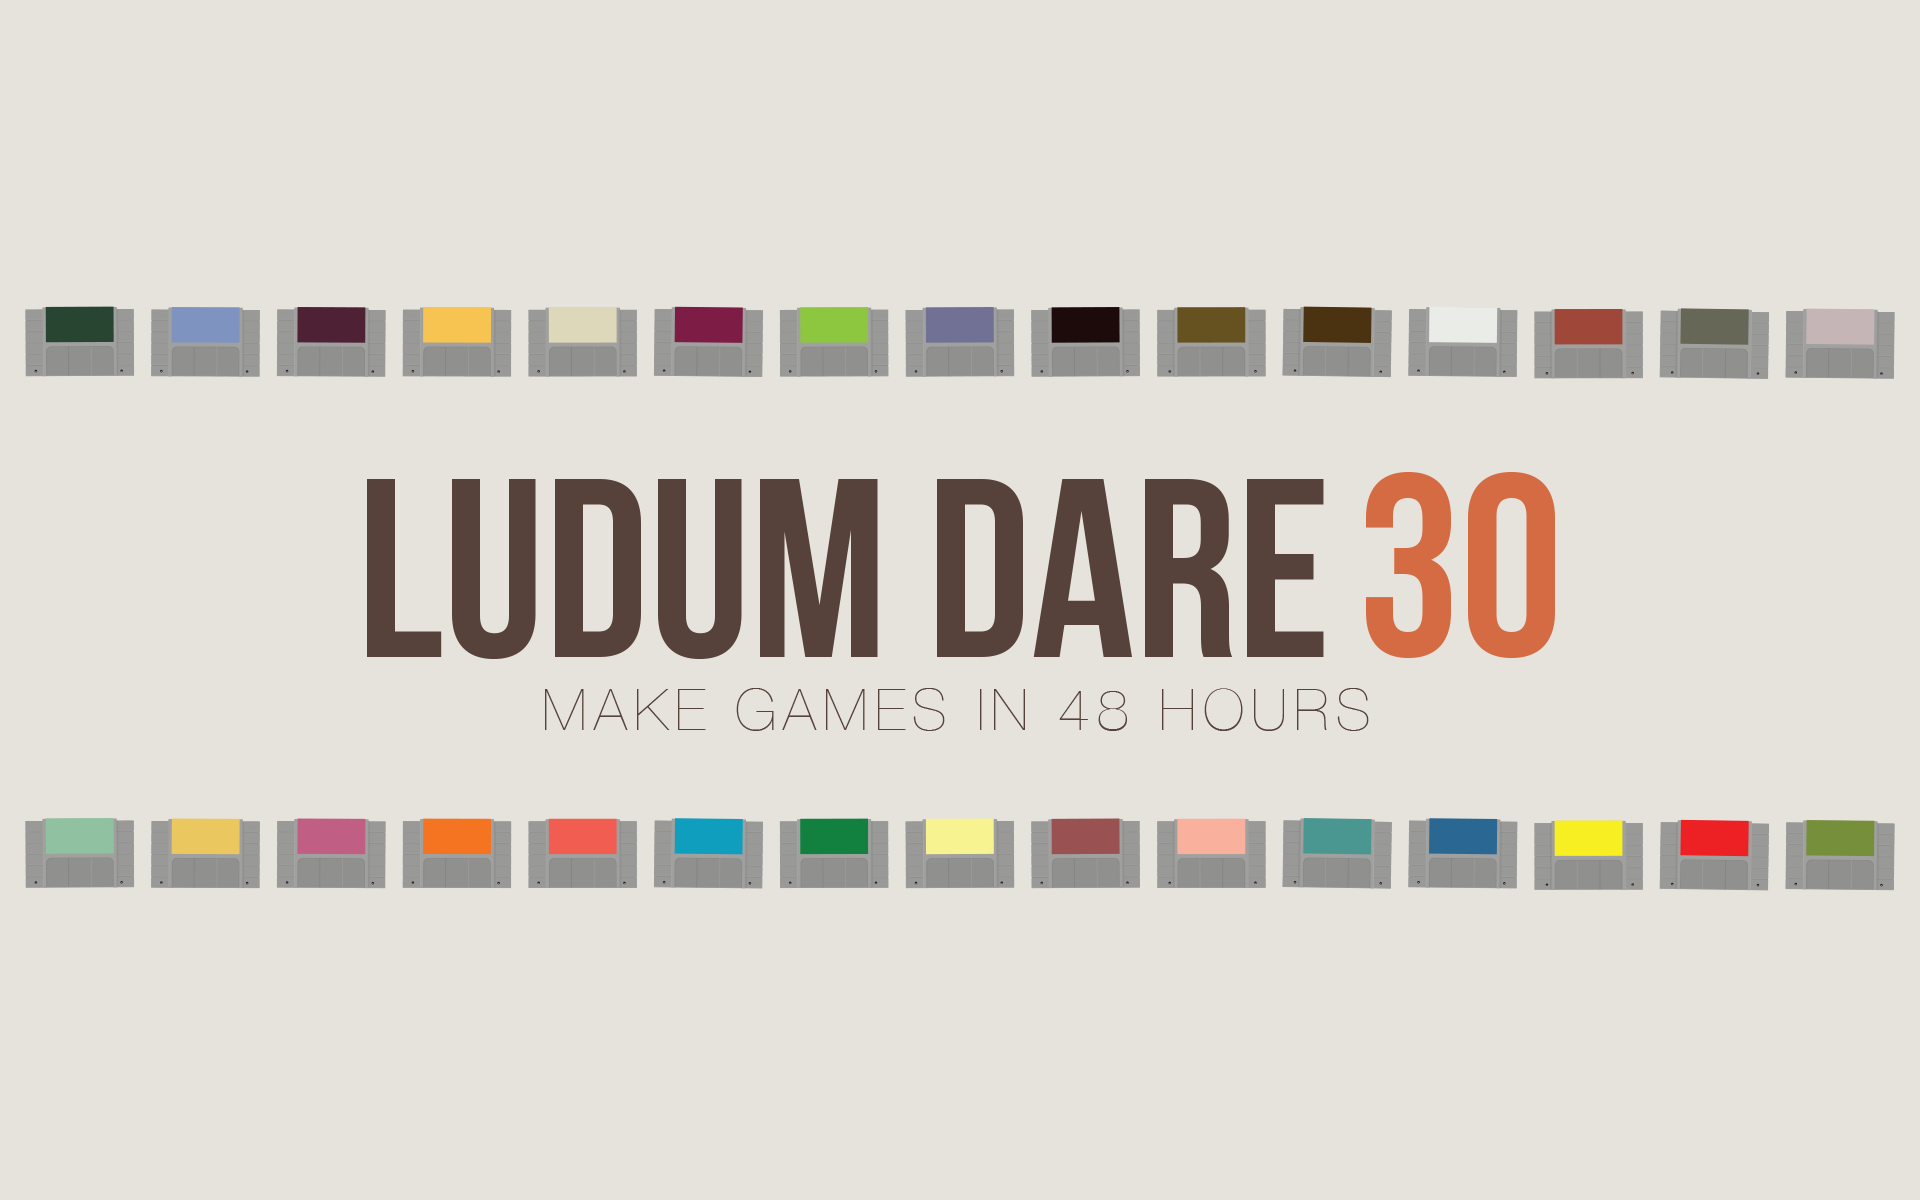 My experiences with Construct 2 in Ludum Dare